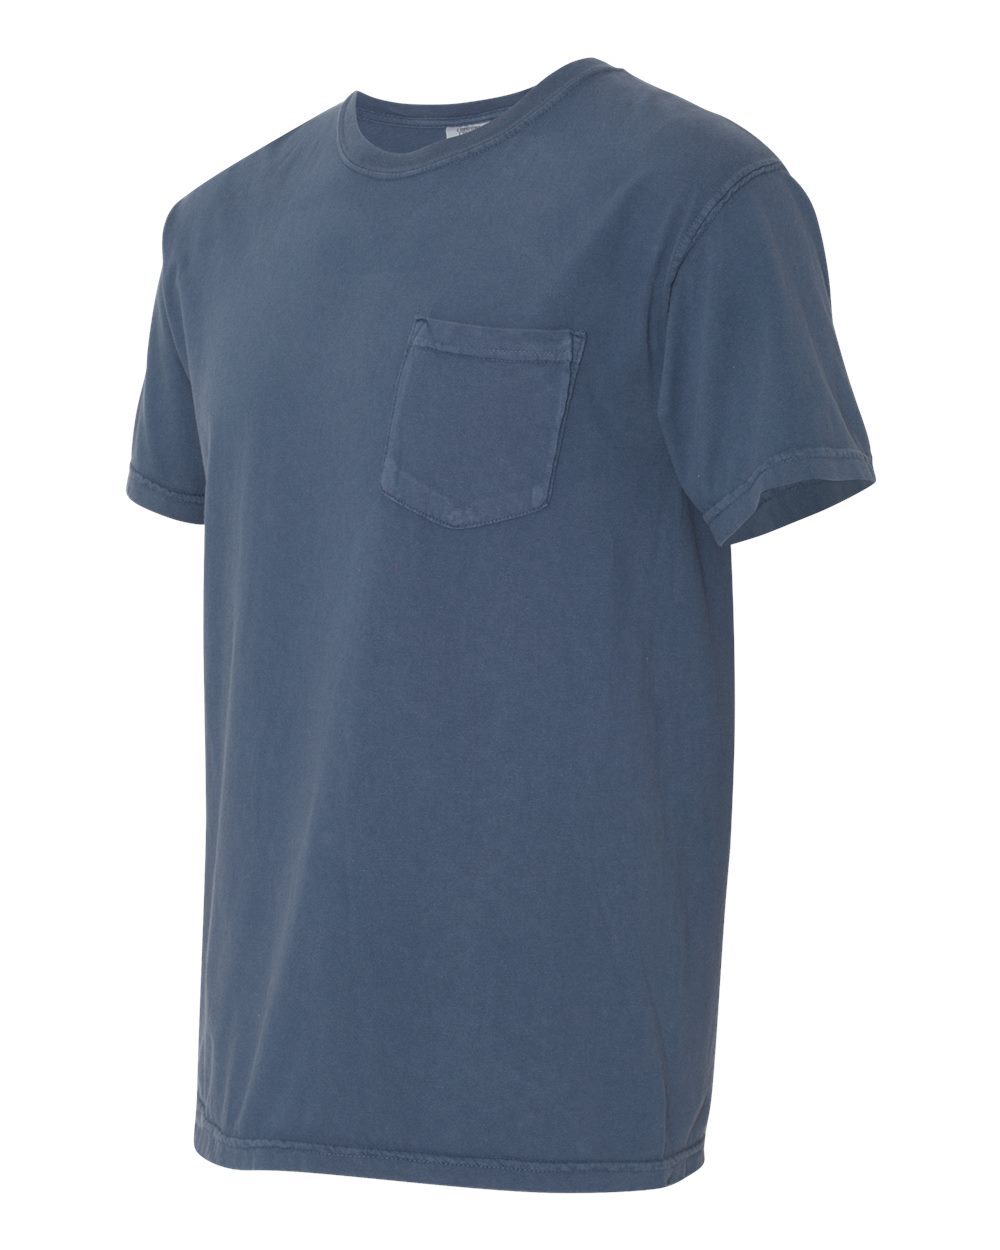 Comfort-Colors-Men-039-s-6-1-oz-Garment-Dyed-Pocket-T-Shirt-6030CC-S-3XL thumbnail 60